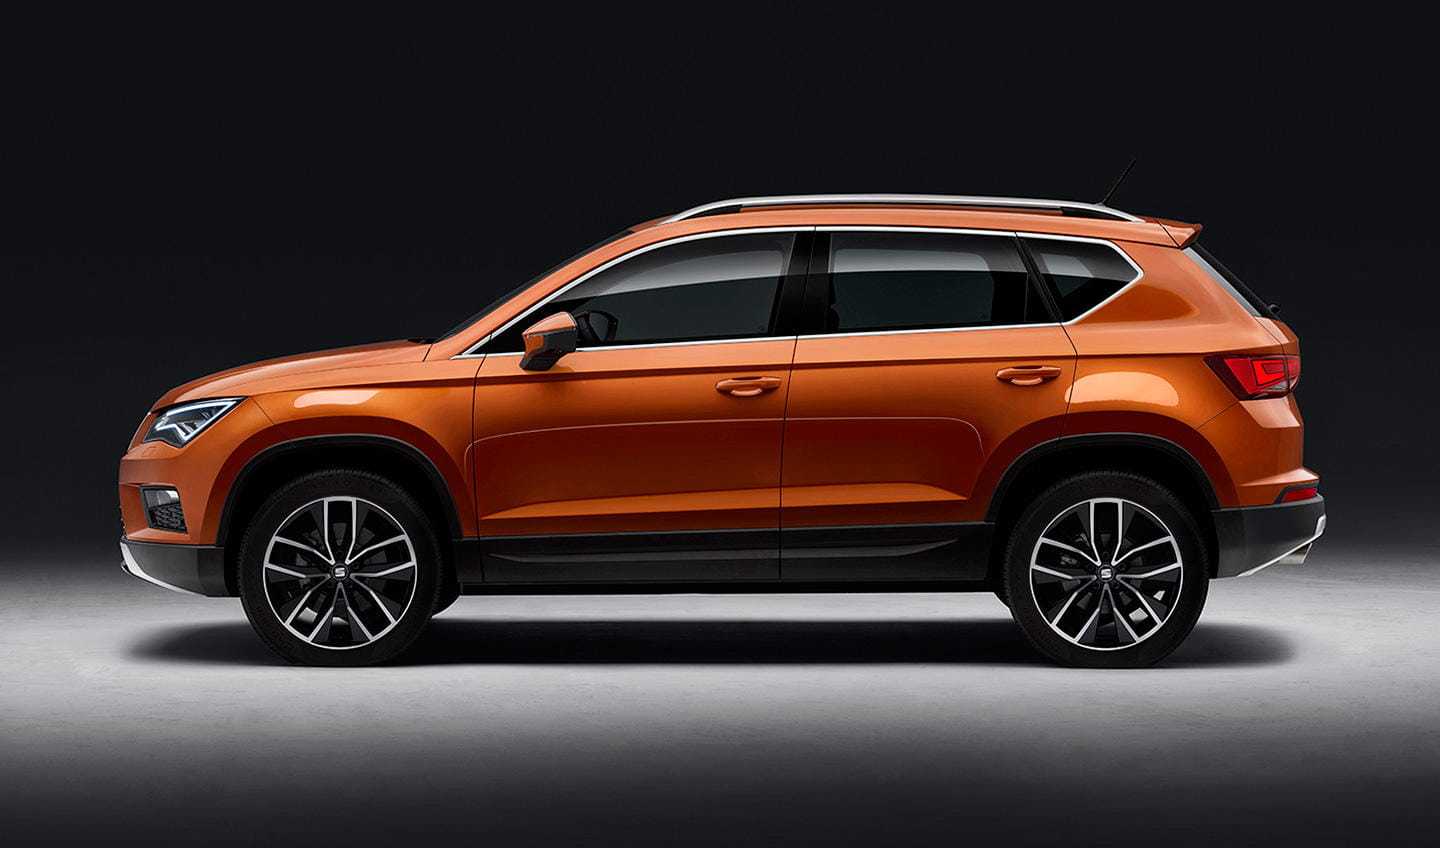 seat ateca vs volkswagen tiguan en 8 im genes son tan. Black Bedroom Furniture Sets. Home Design Ideas